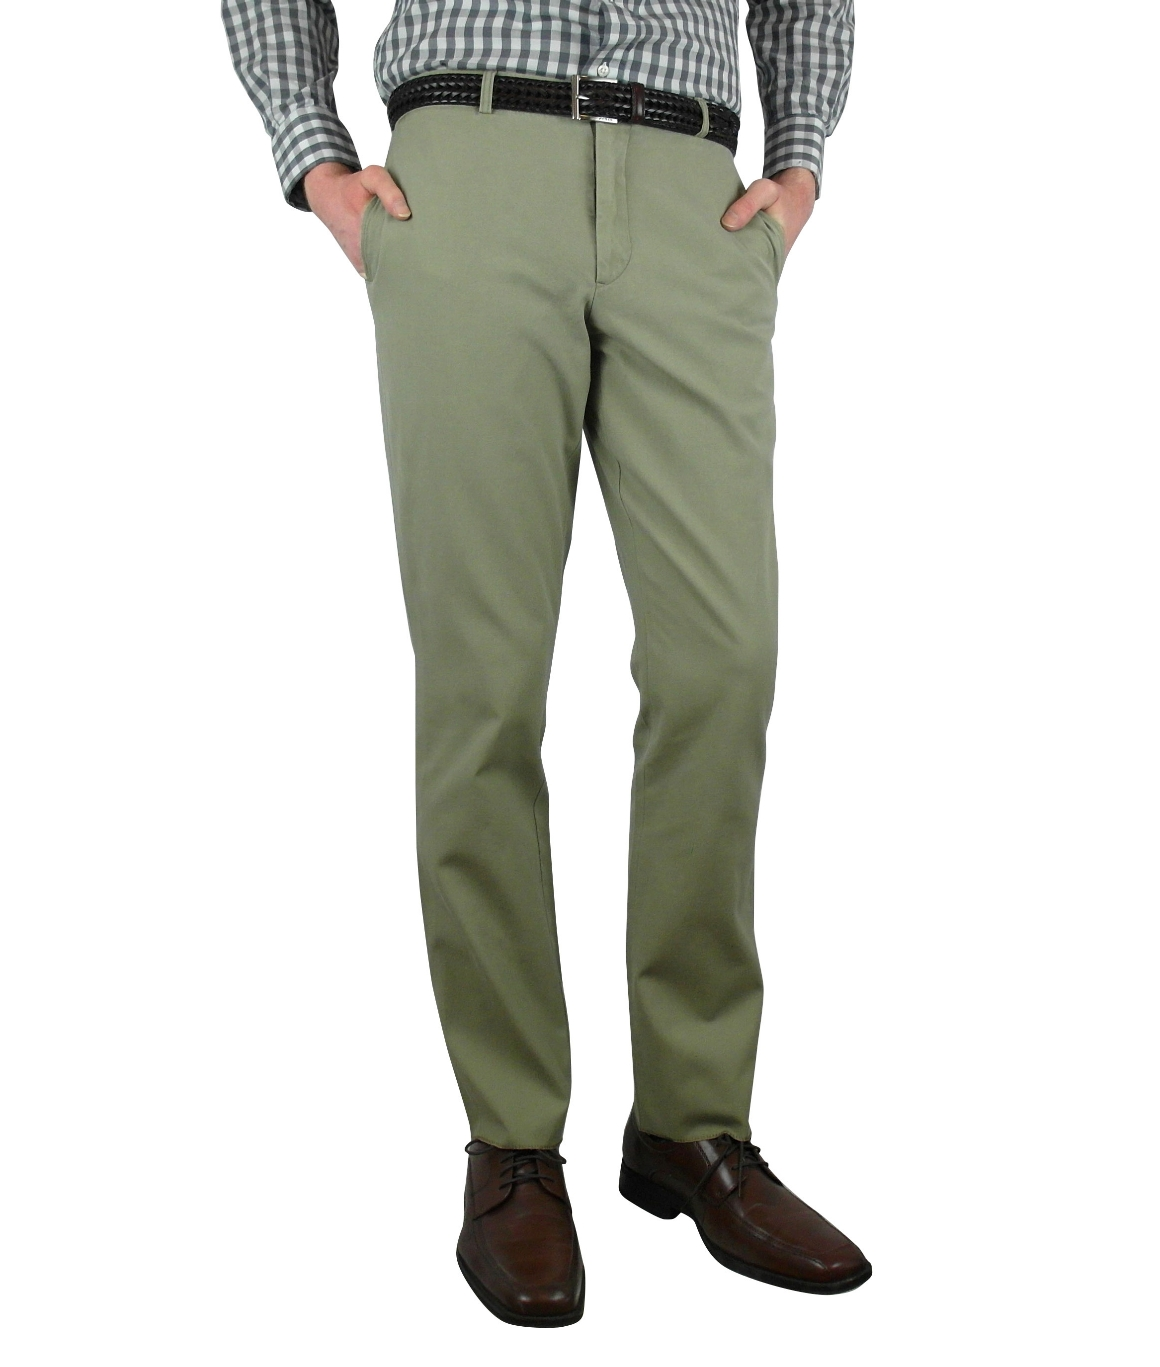 Corbin, SOLID VINTAGE WASH RETRO-FIT TROUSERS, Sage, Number 1